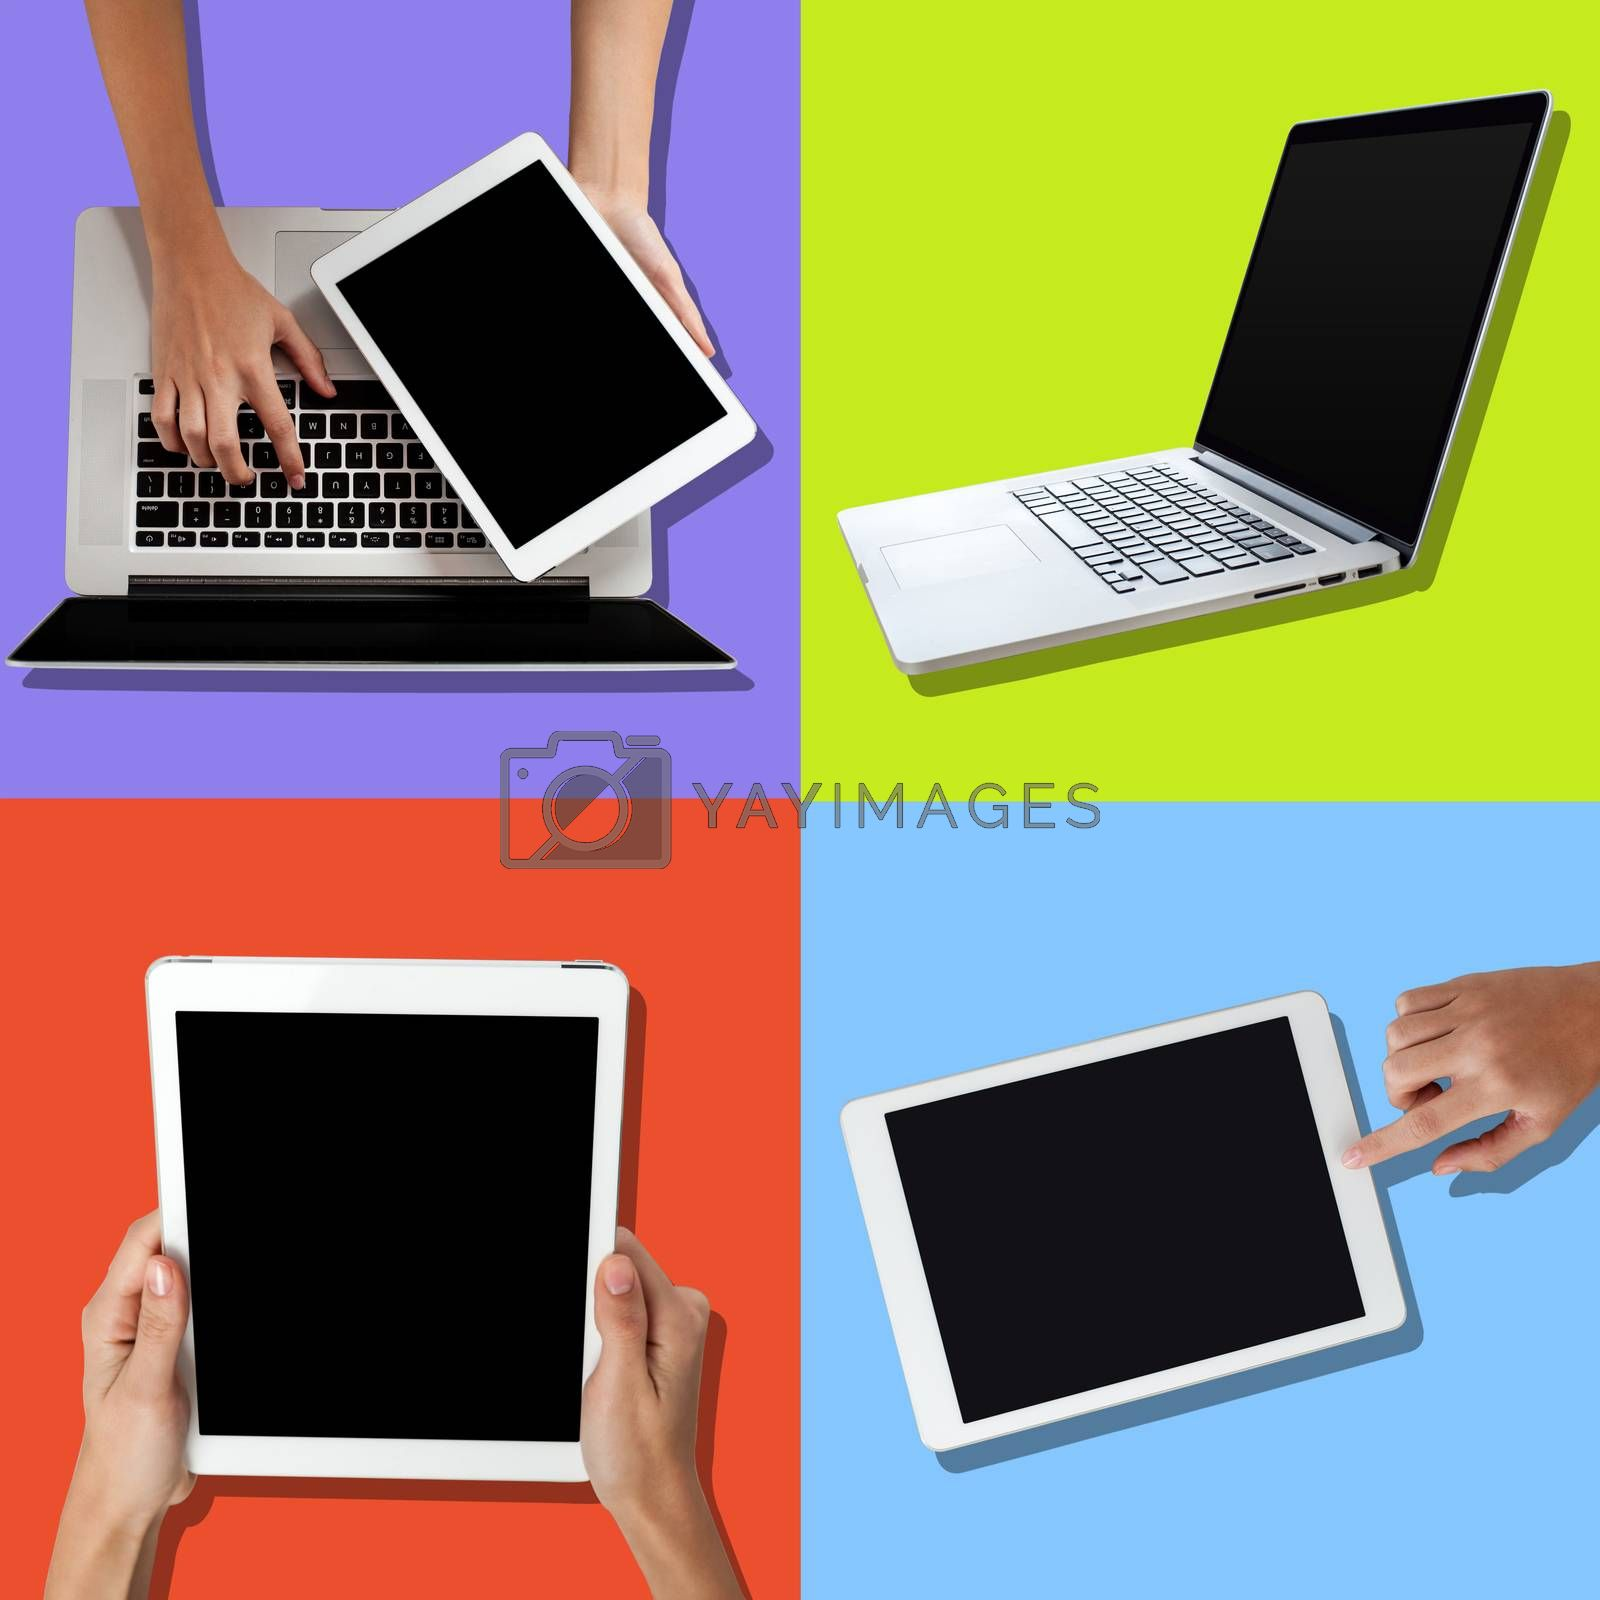 Human hand using laptop and holding tablet